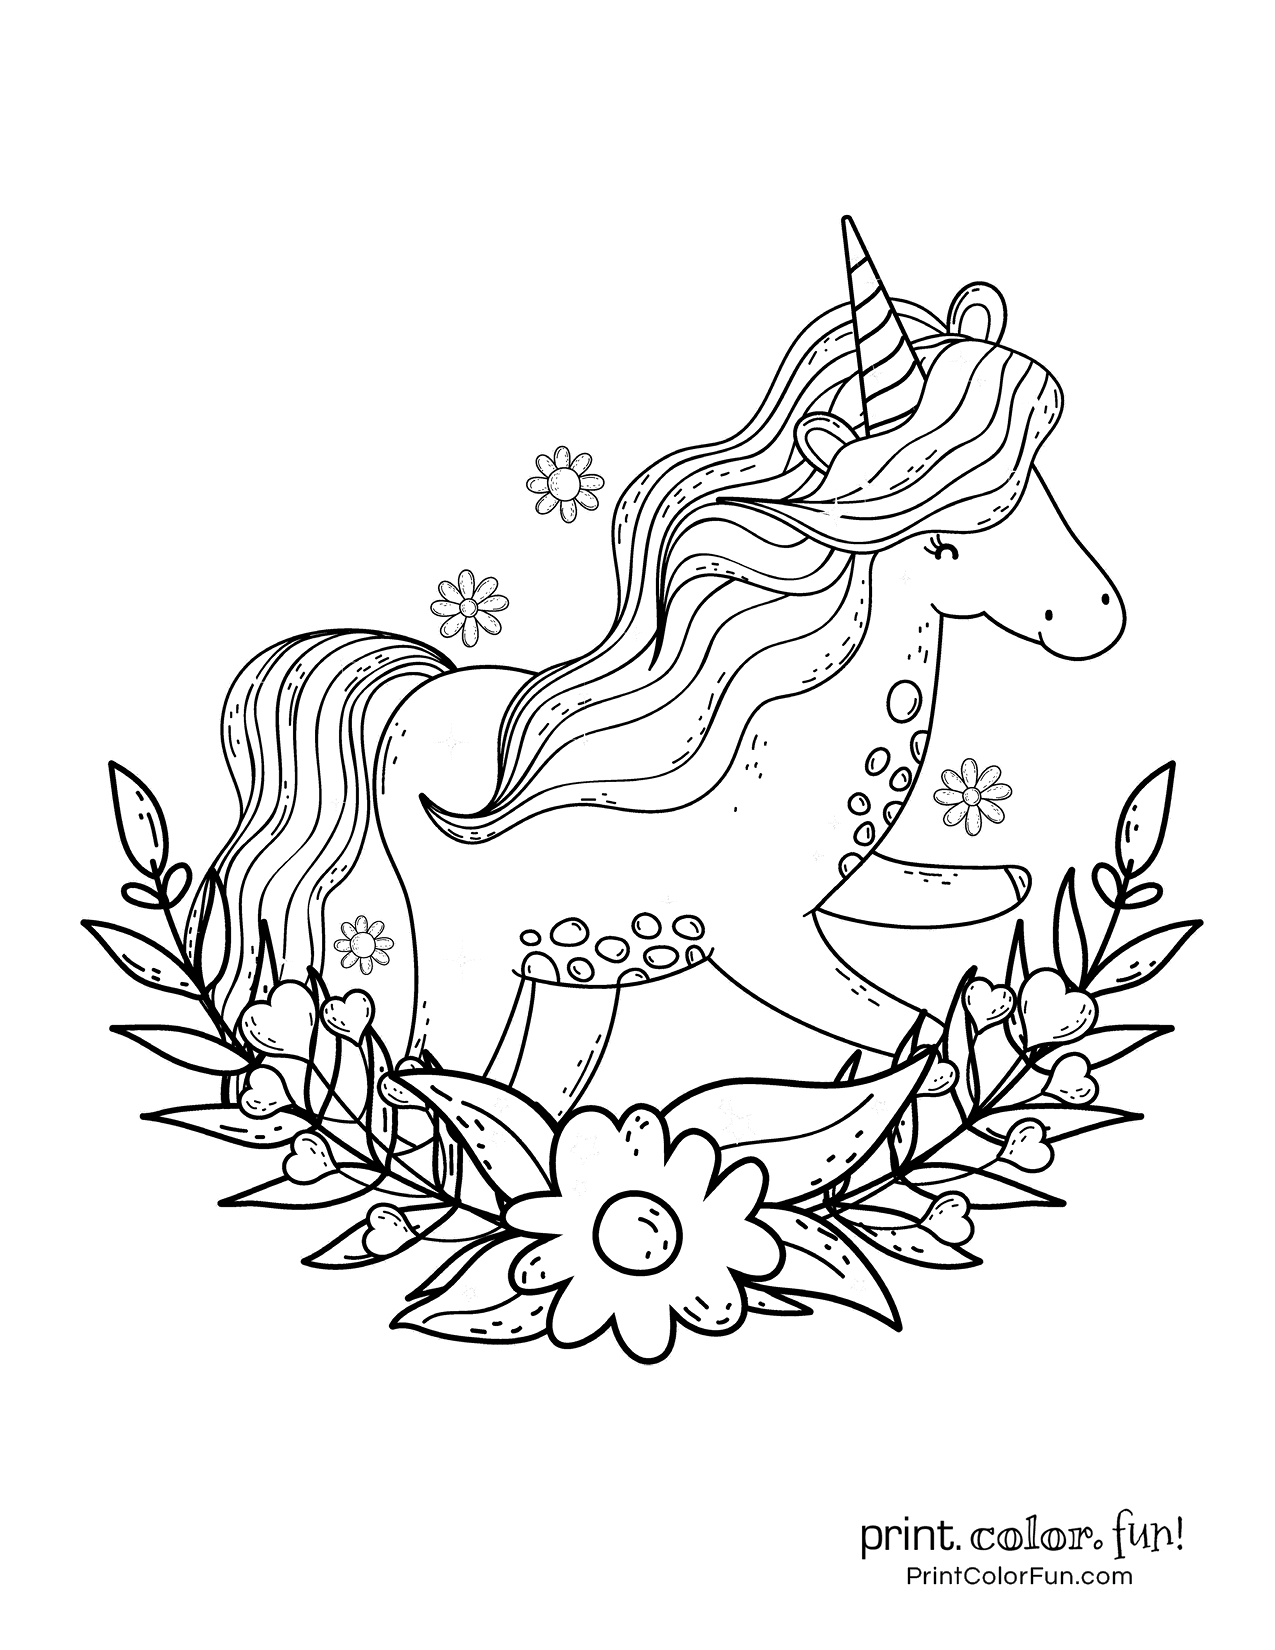 Top 100 magical unicorn coloring pages: The ultimate (free!) printable collection - Print. Color. Fun!